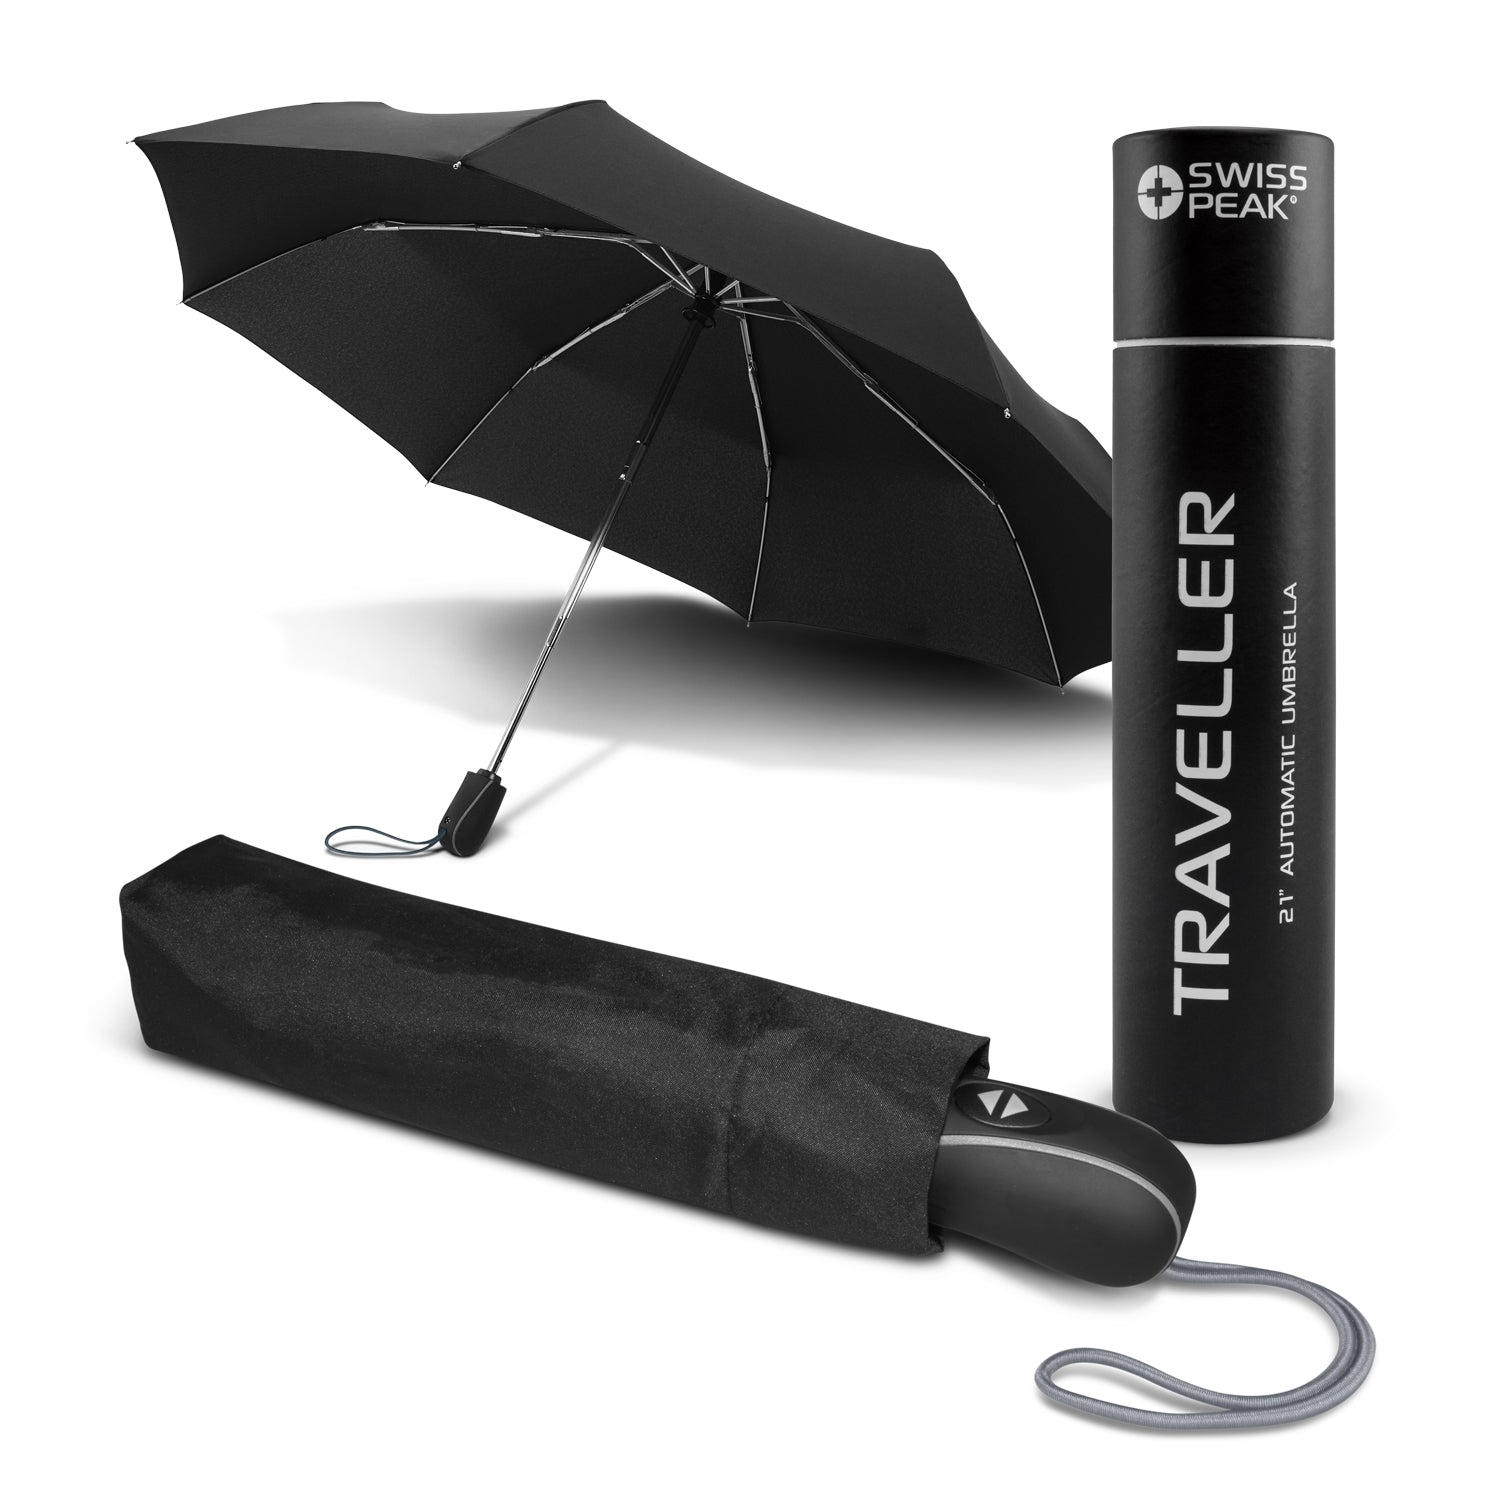 Premium Swiss Peak Traveller Umbrella(SUM-18T) - greenpac.com.au